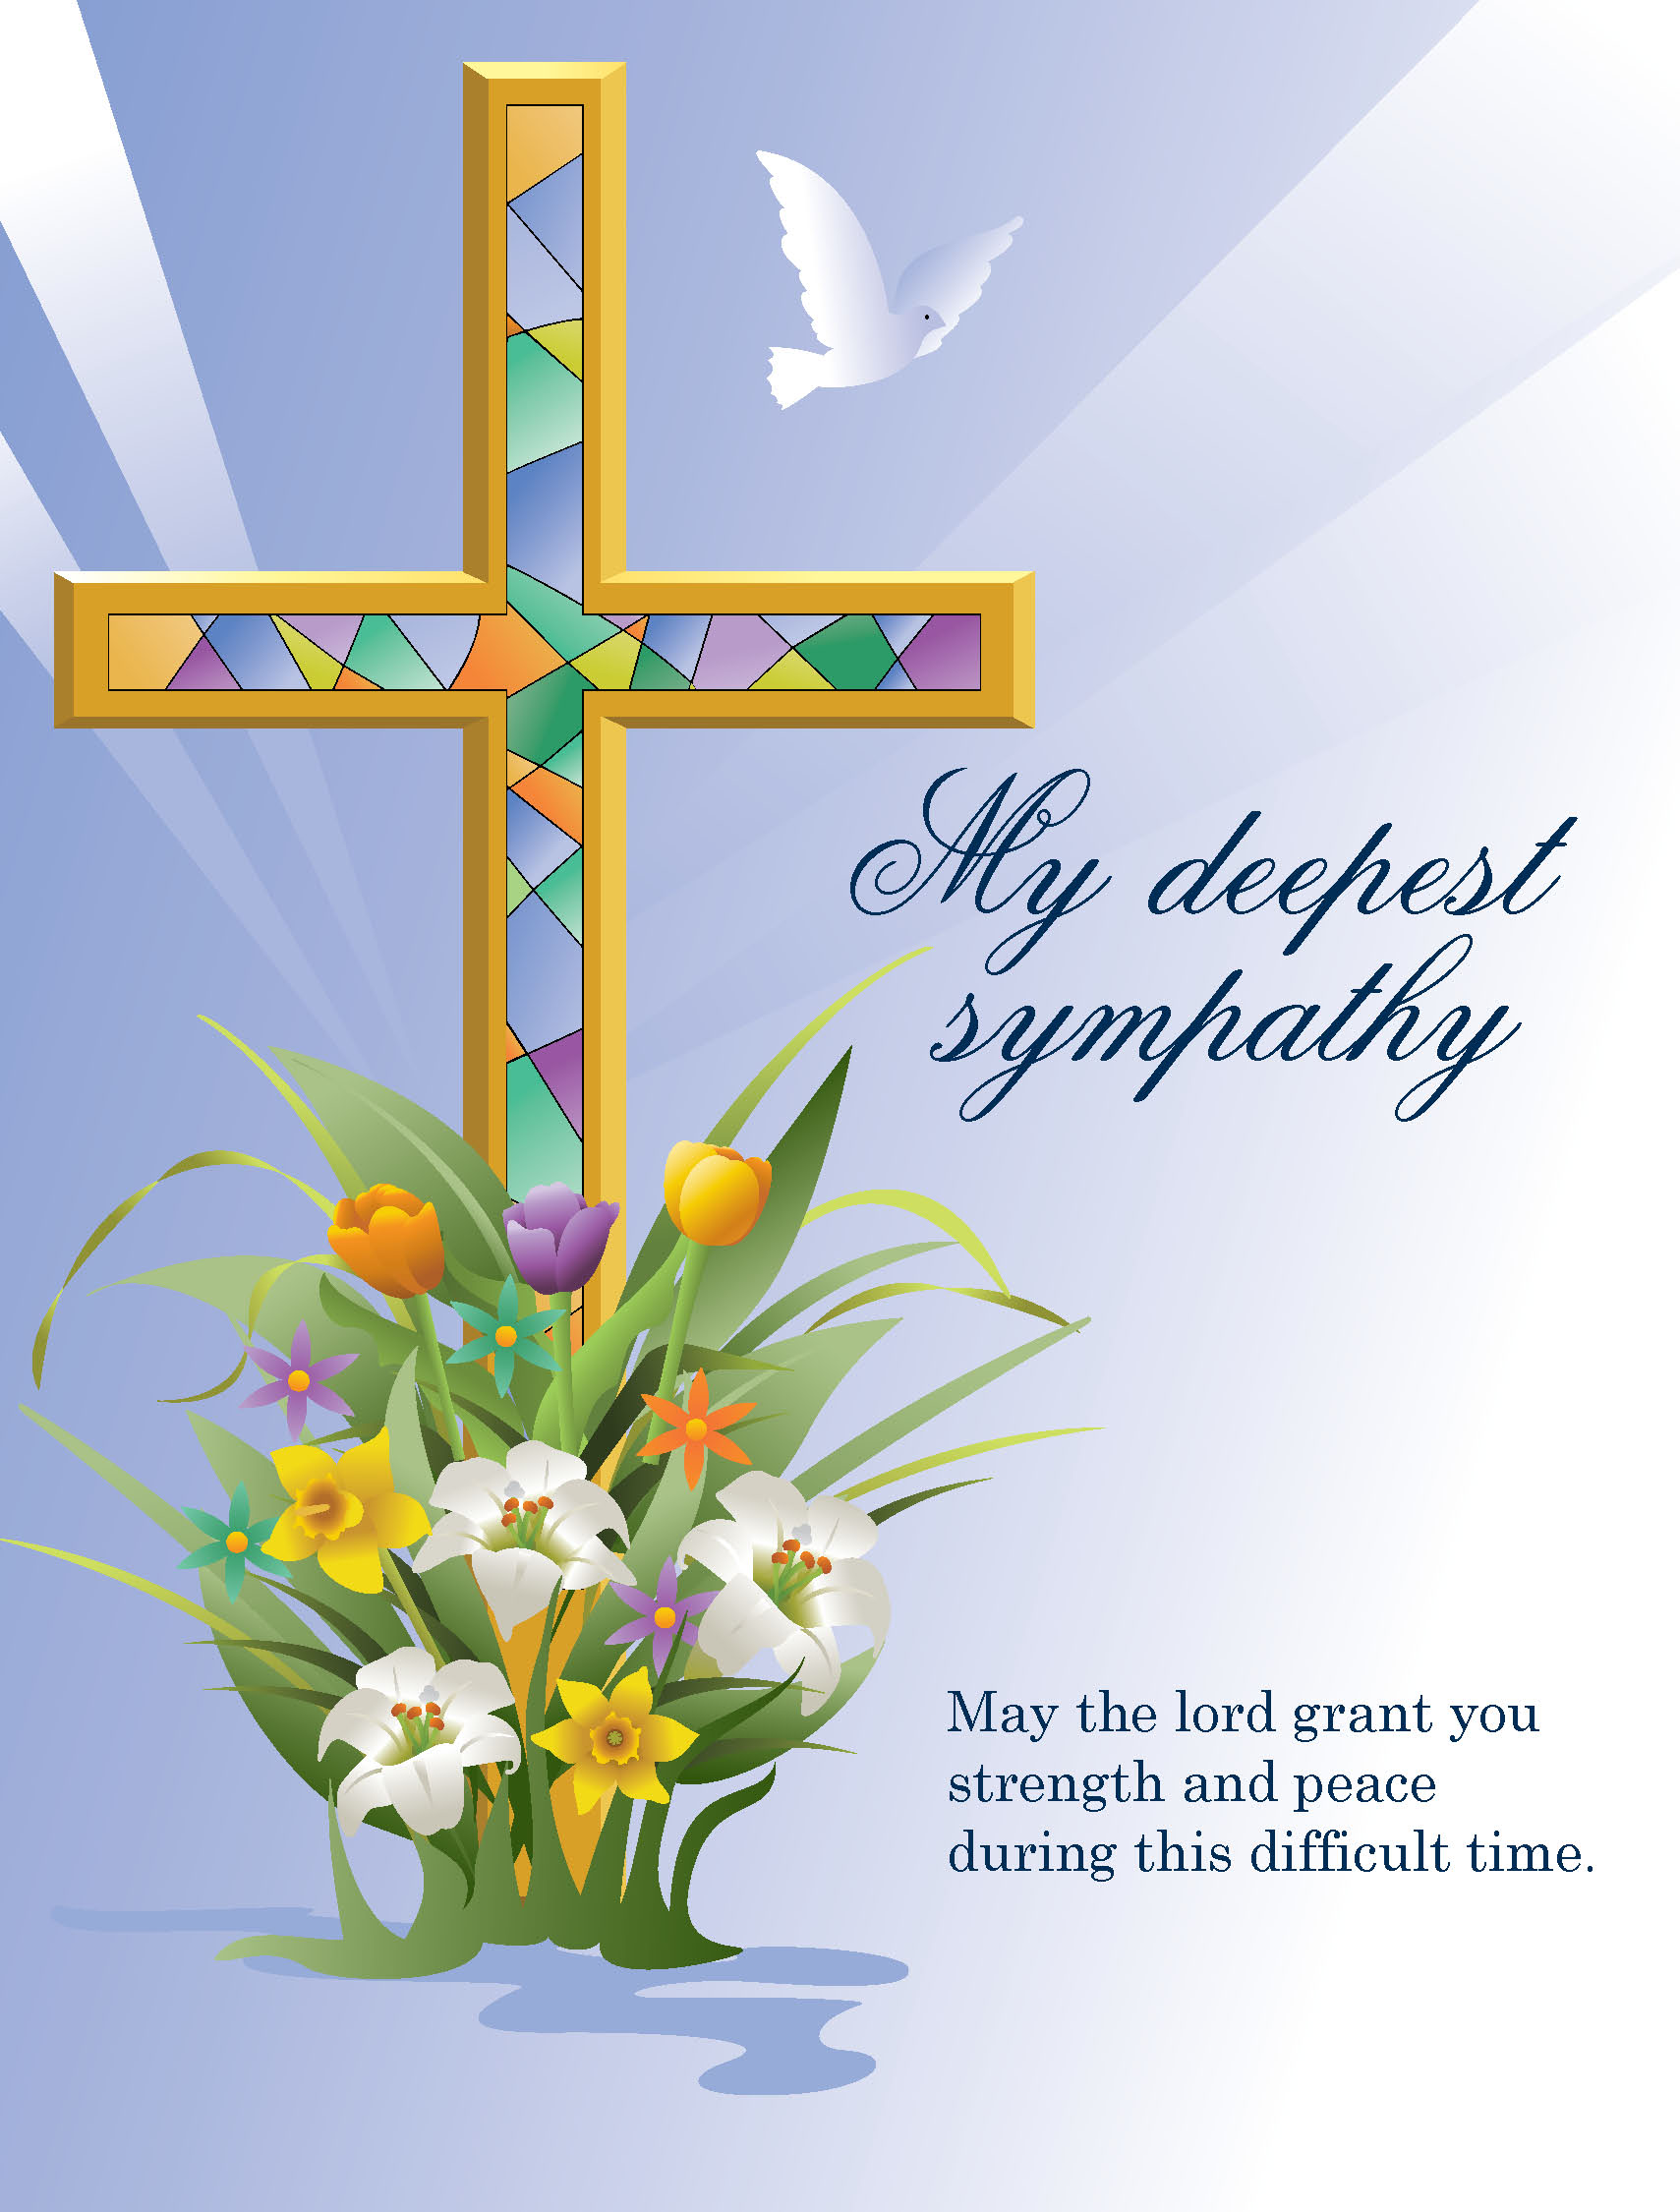 Peace clipart condolence  Pin and sympathy/][img]http://www on